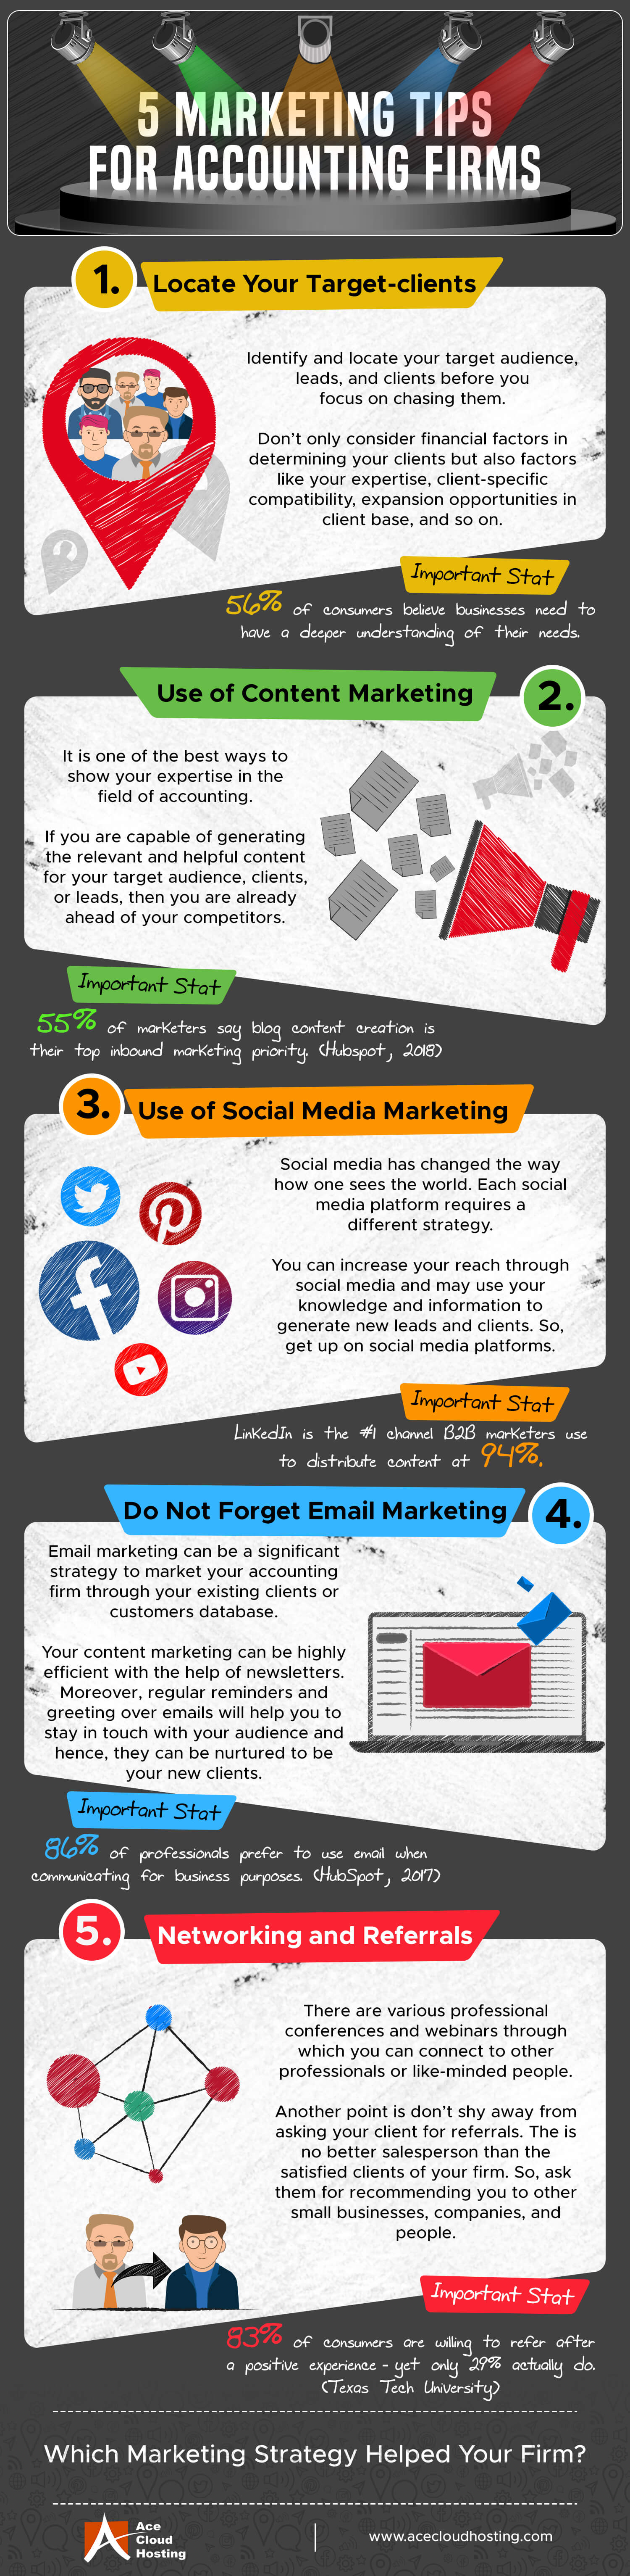 5 Marketing tips for accounting firm infographic